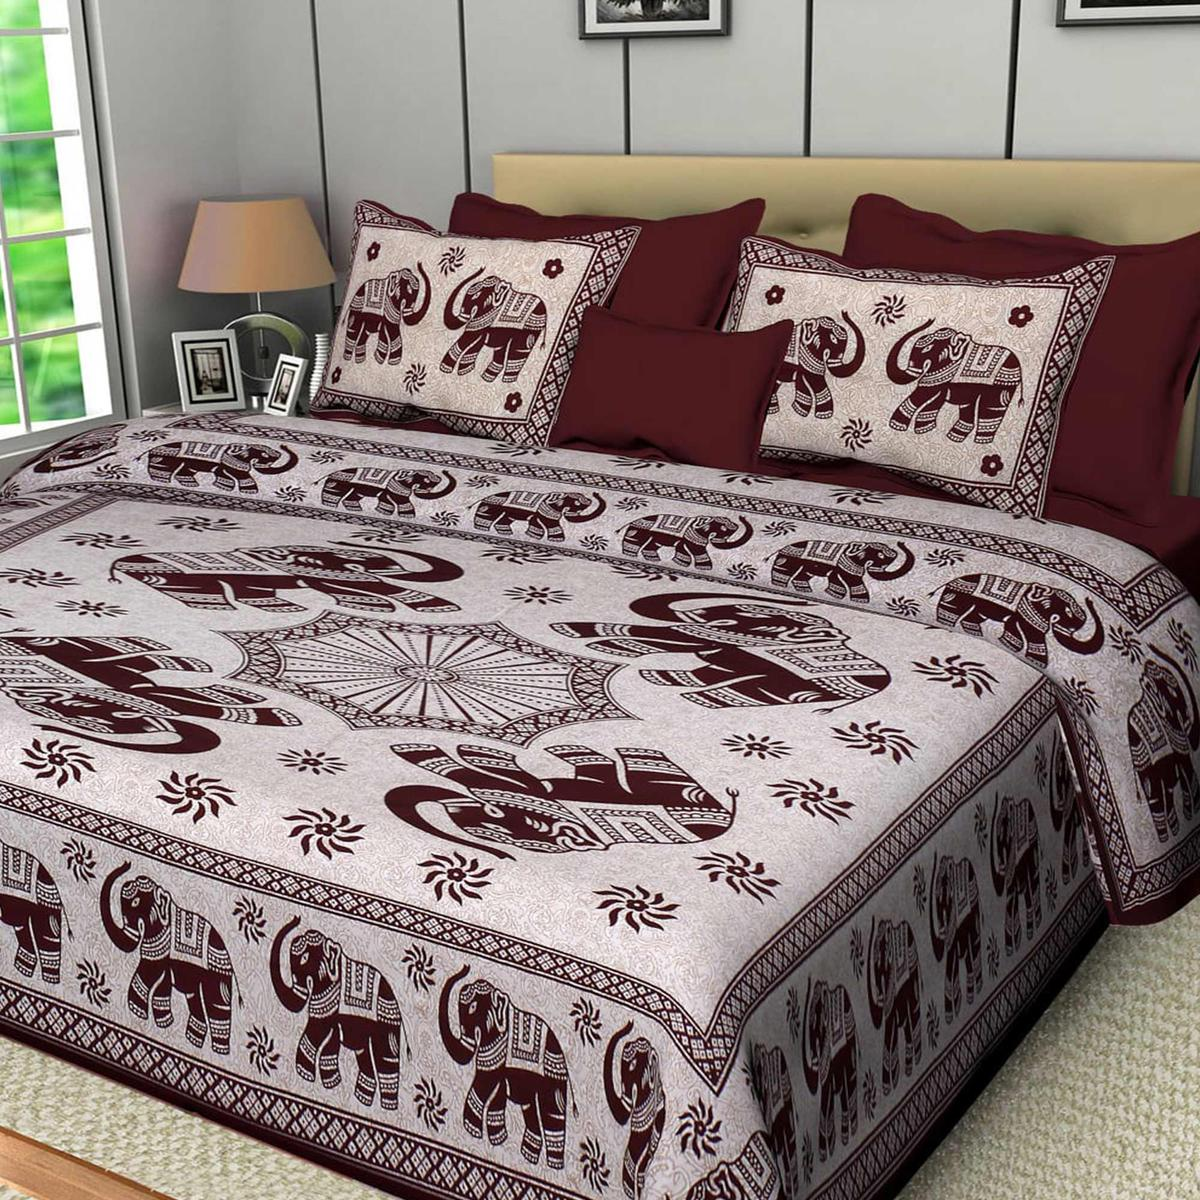 Diva Collection - Brown Colored Jaipuri Print Cotton Double Bedsheet with 2 Pillow Cover